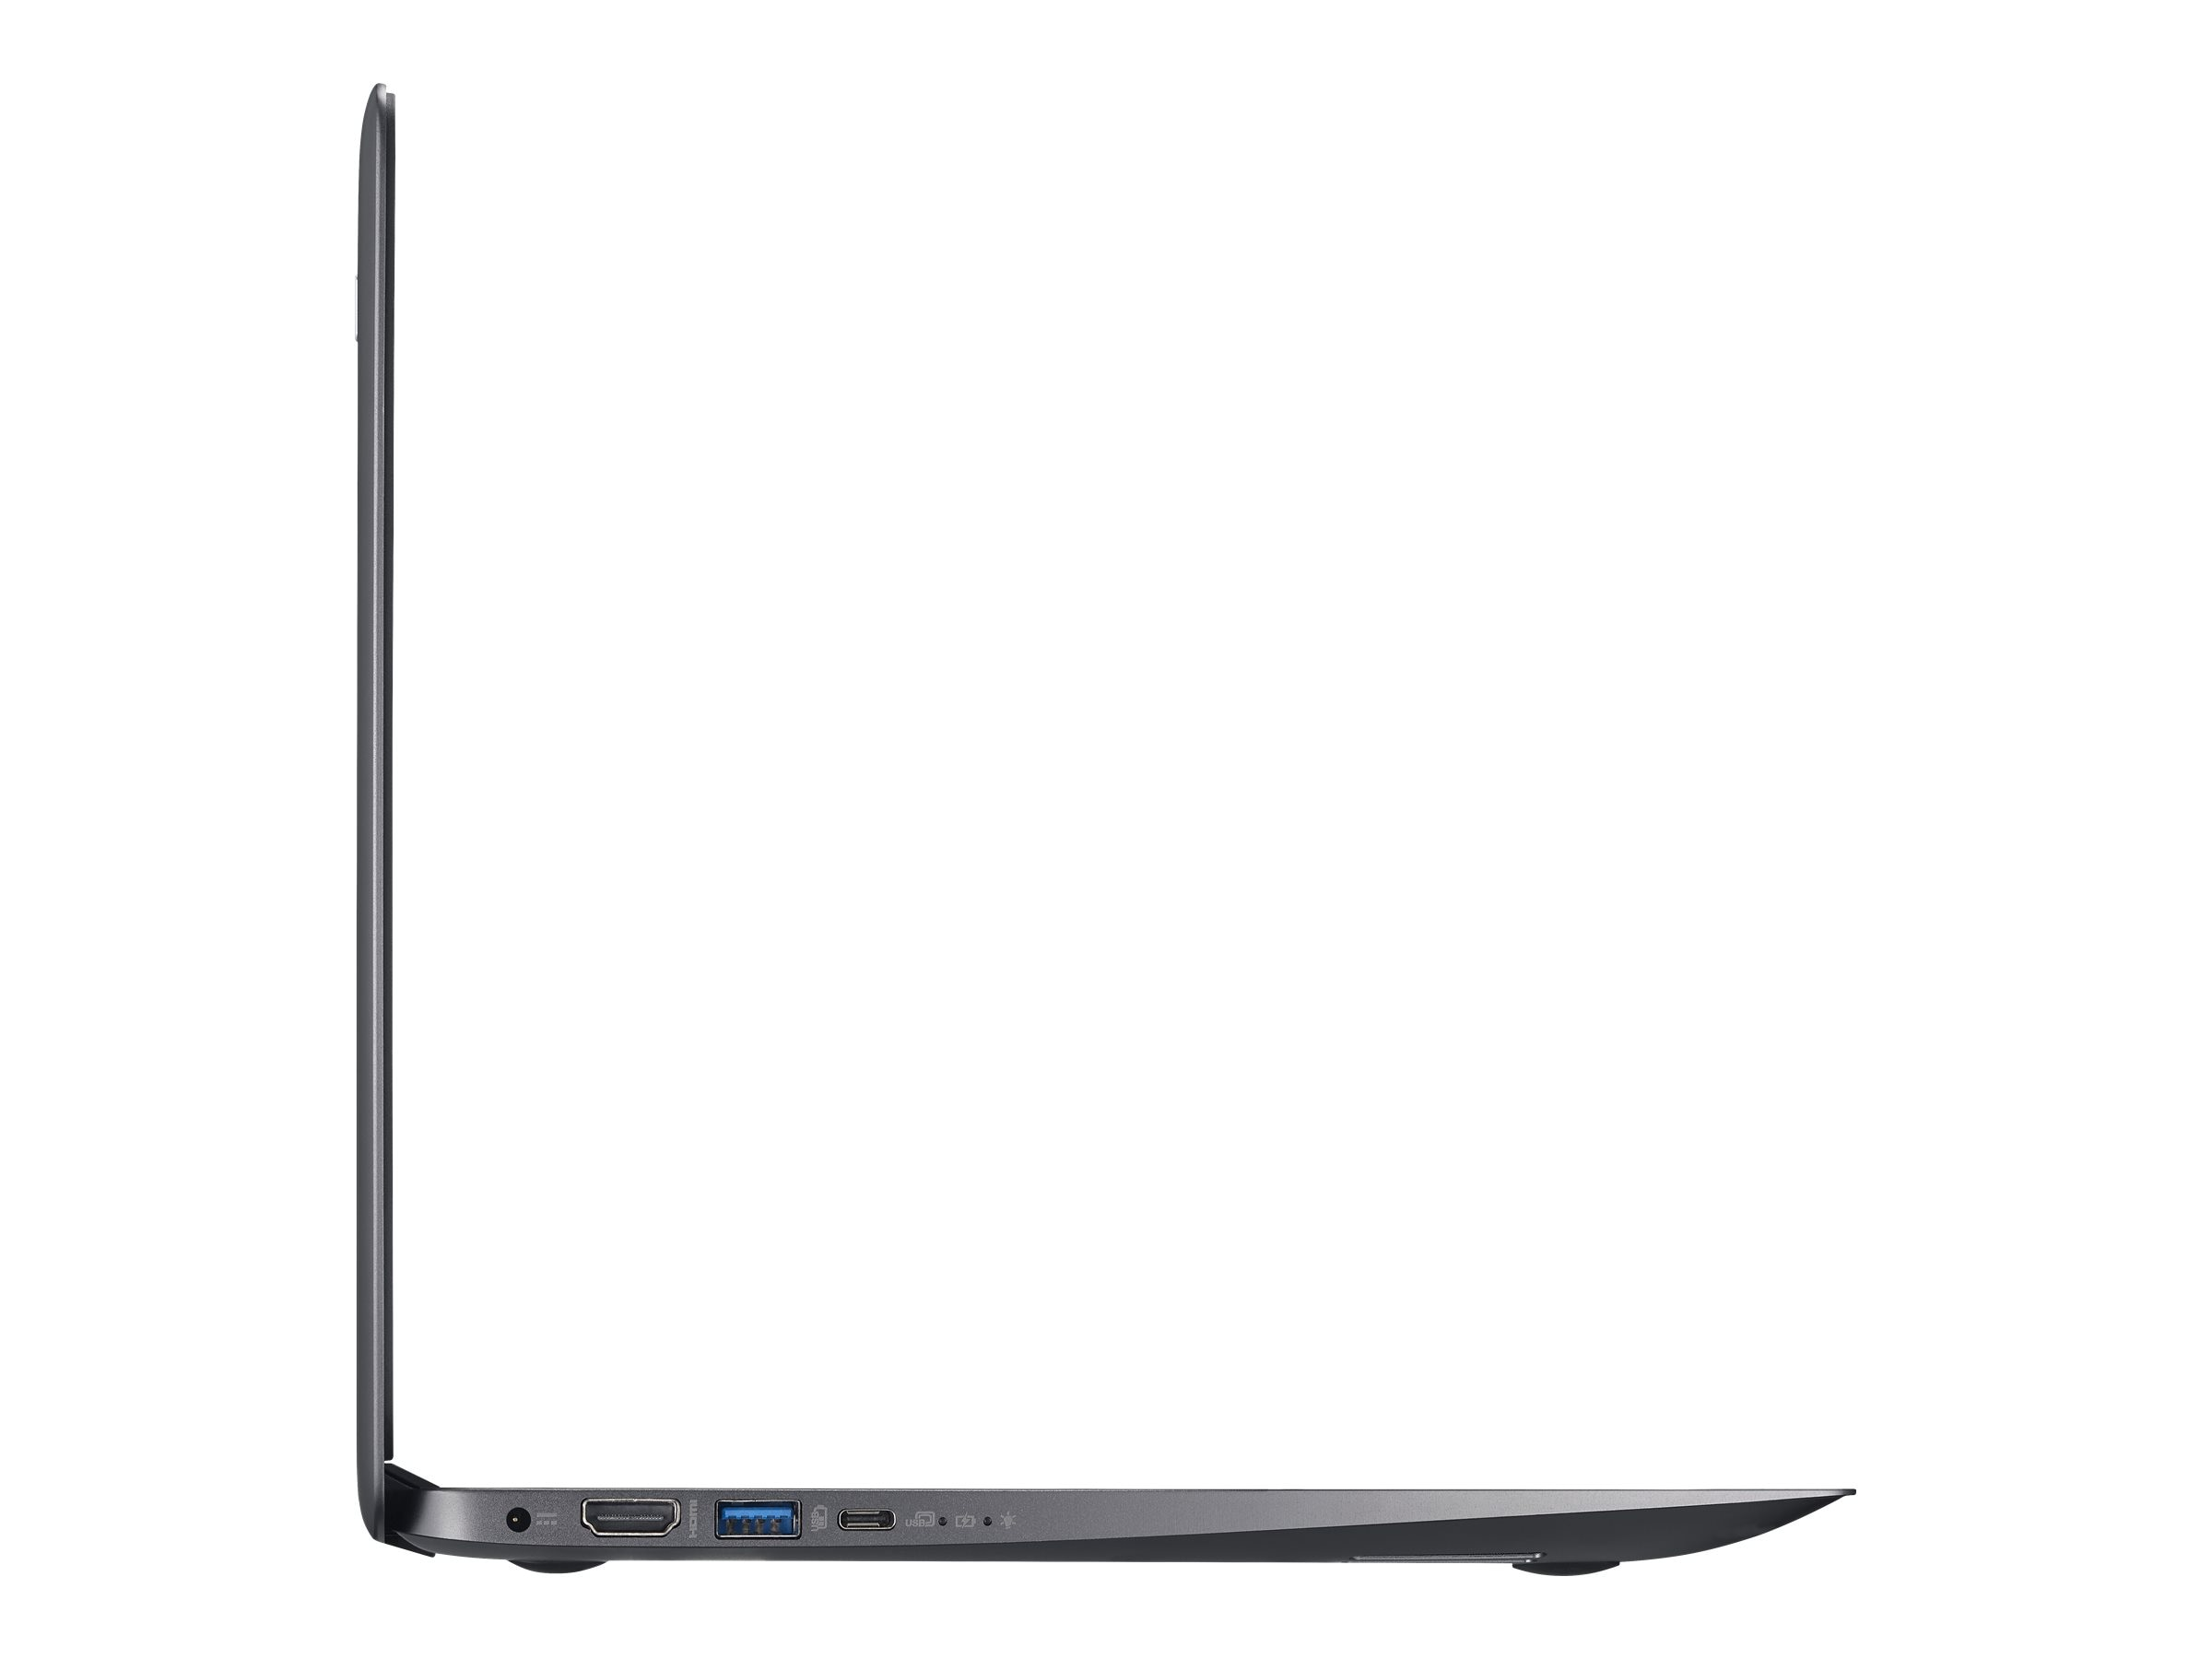 Acer TravelMate X349-M-32PH 2.3GHz Core i3 14in display, NX.VDFAA.007